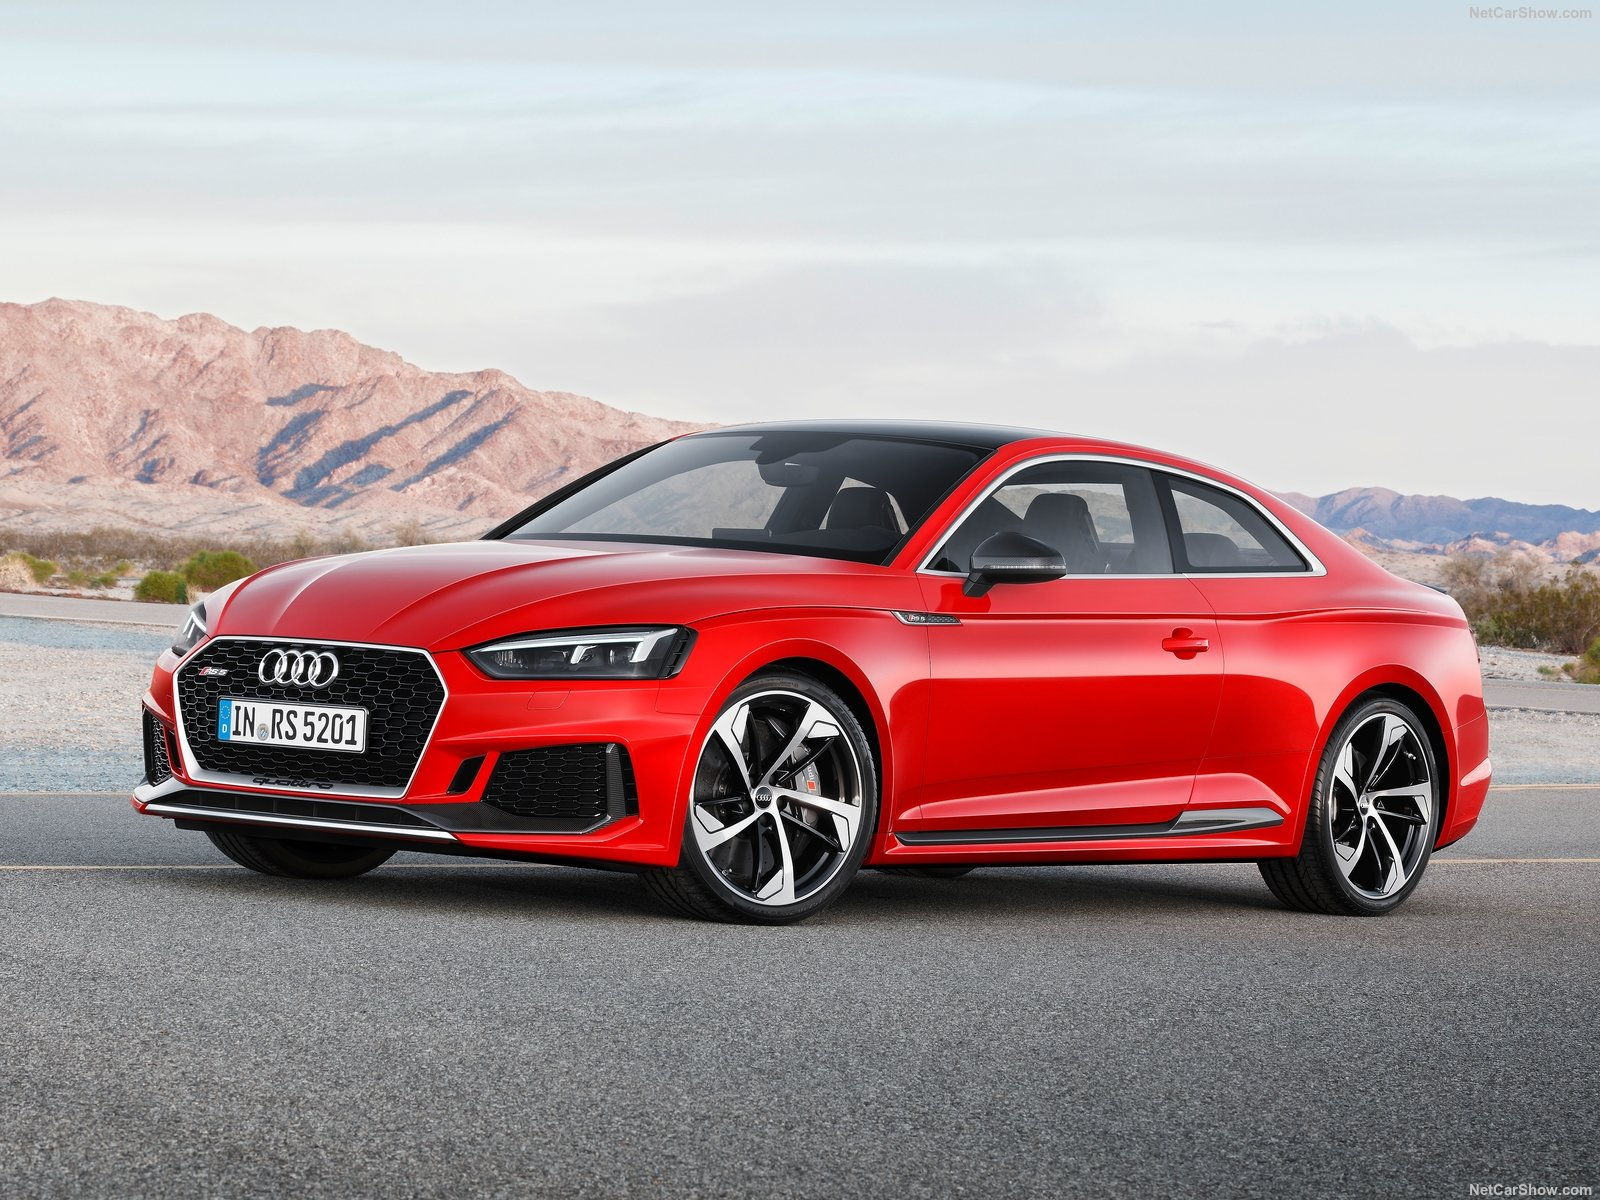 Audi RS5 Coupe photo 175203